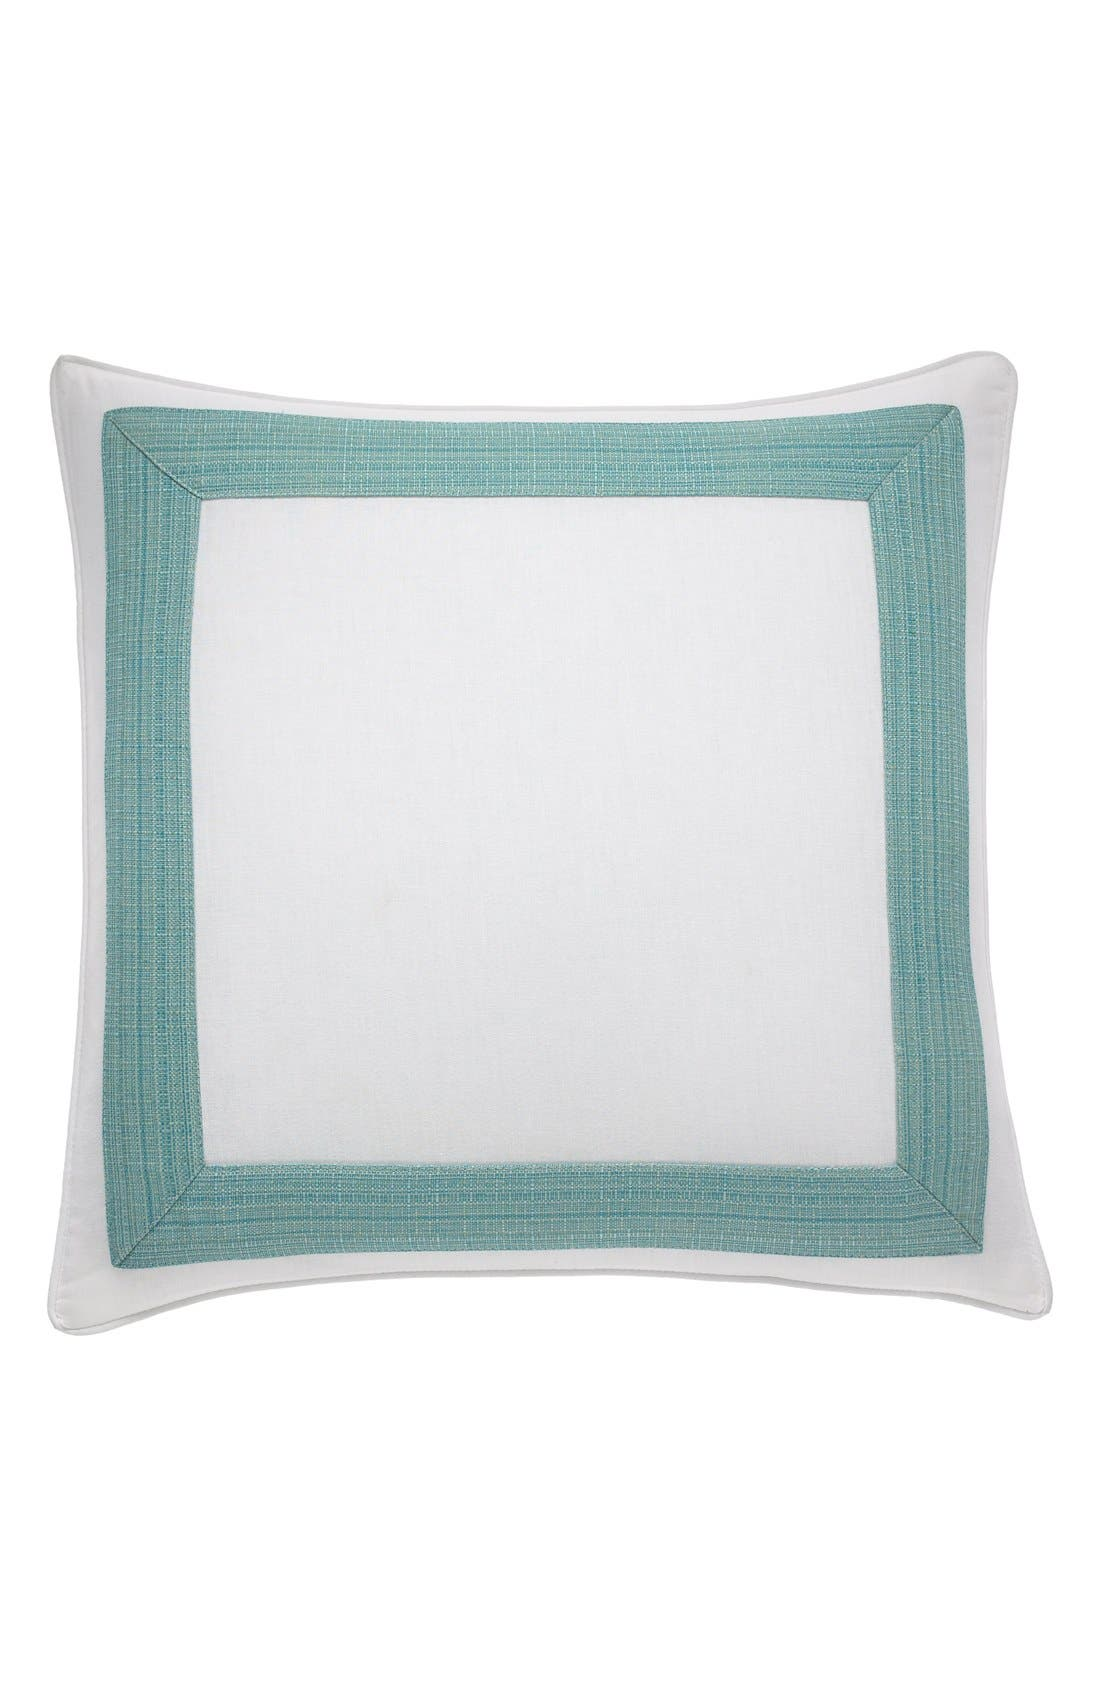 Alternate Image 1 Selected - Tommy Bahama 'Seaglass Border' Pillow